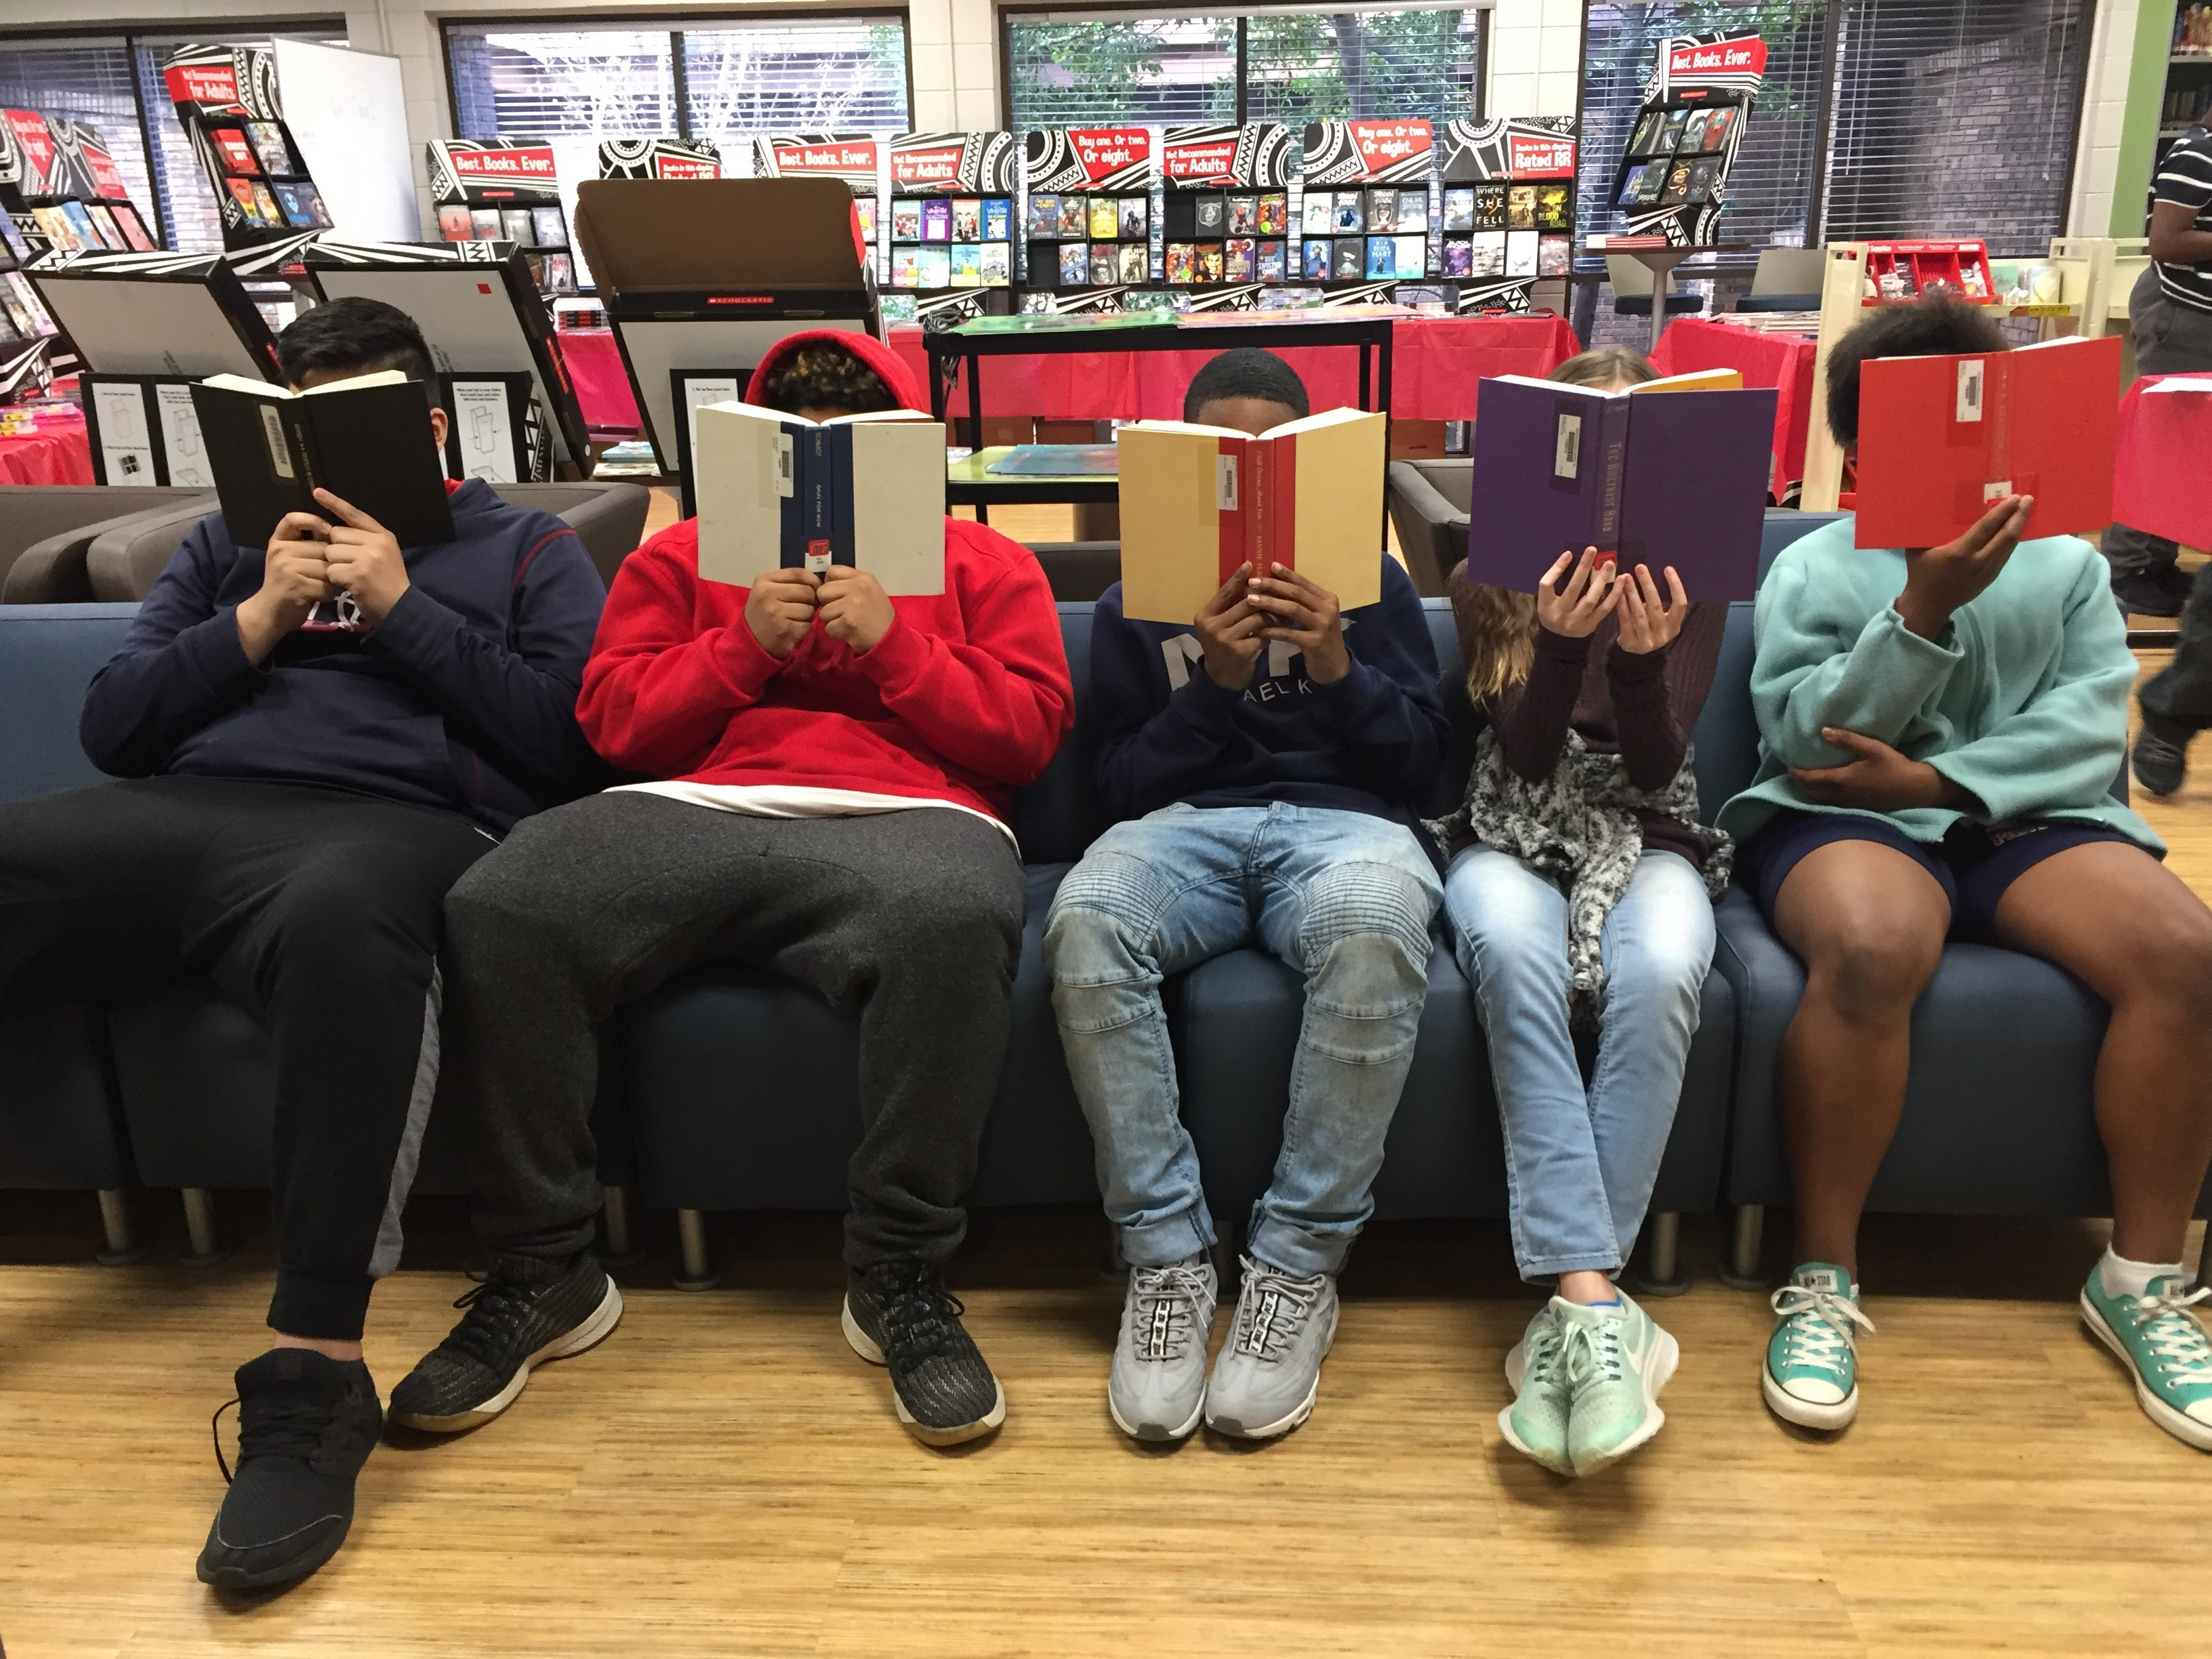 Image of students reading books in the library.